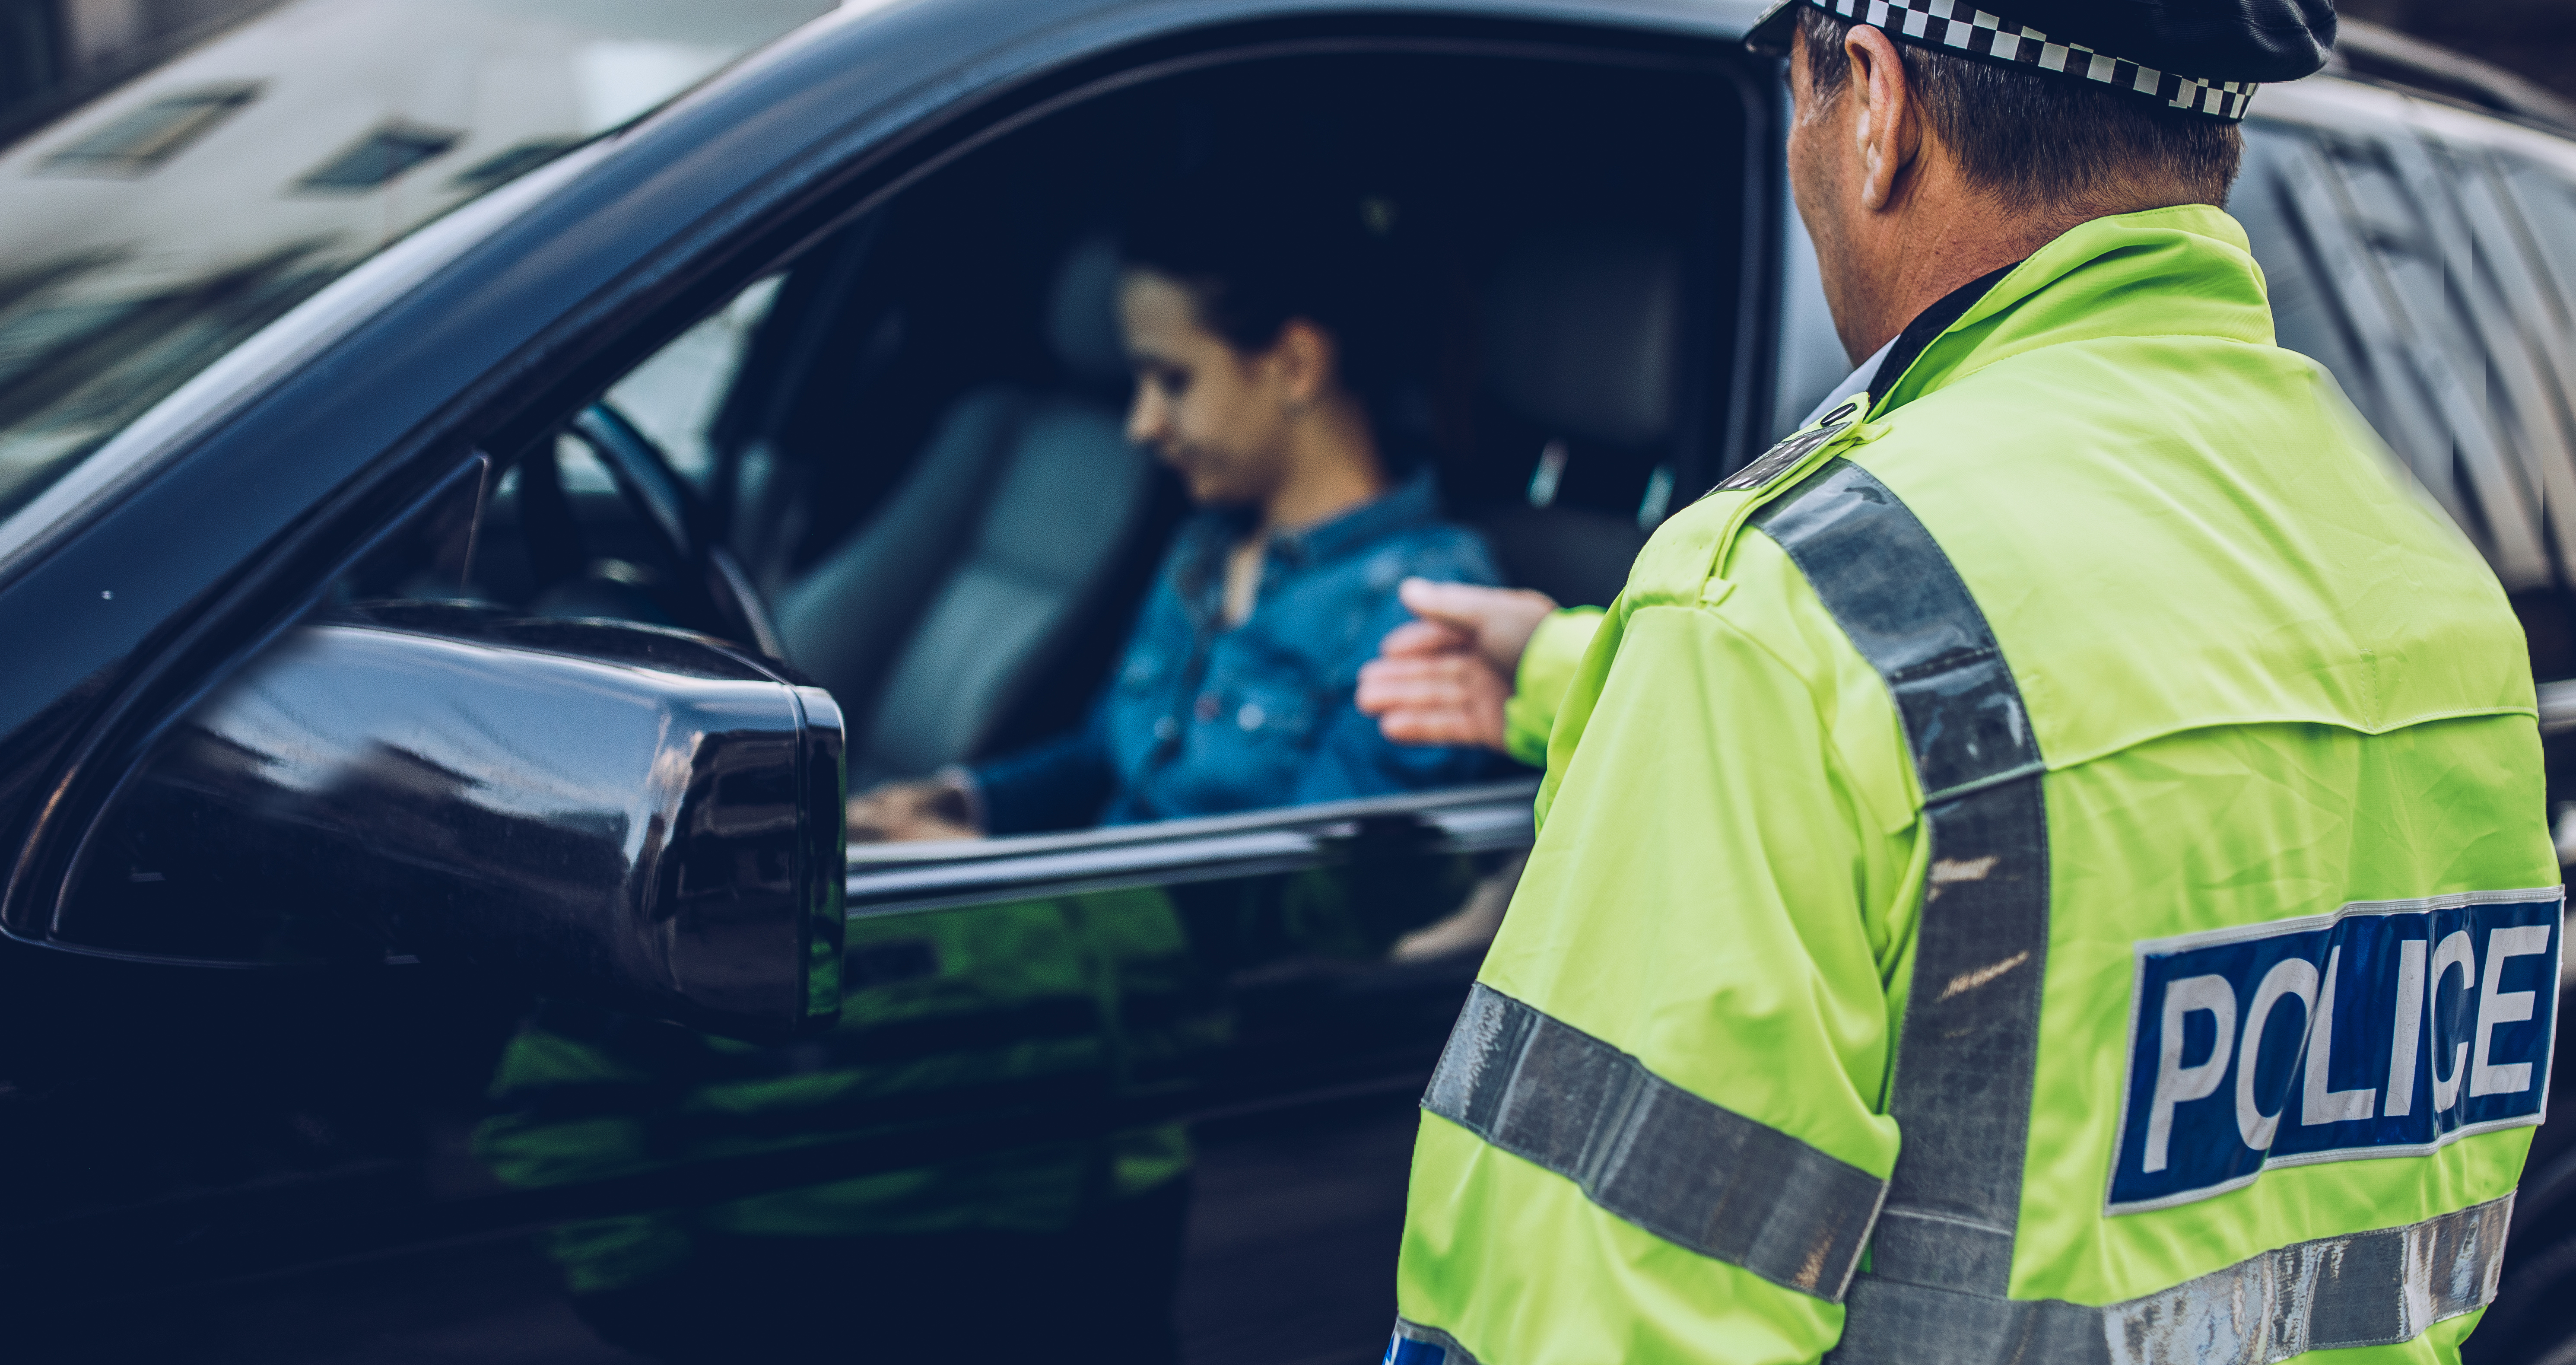 What Pops Up When the Police Run Your Plates? | Career Trend